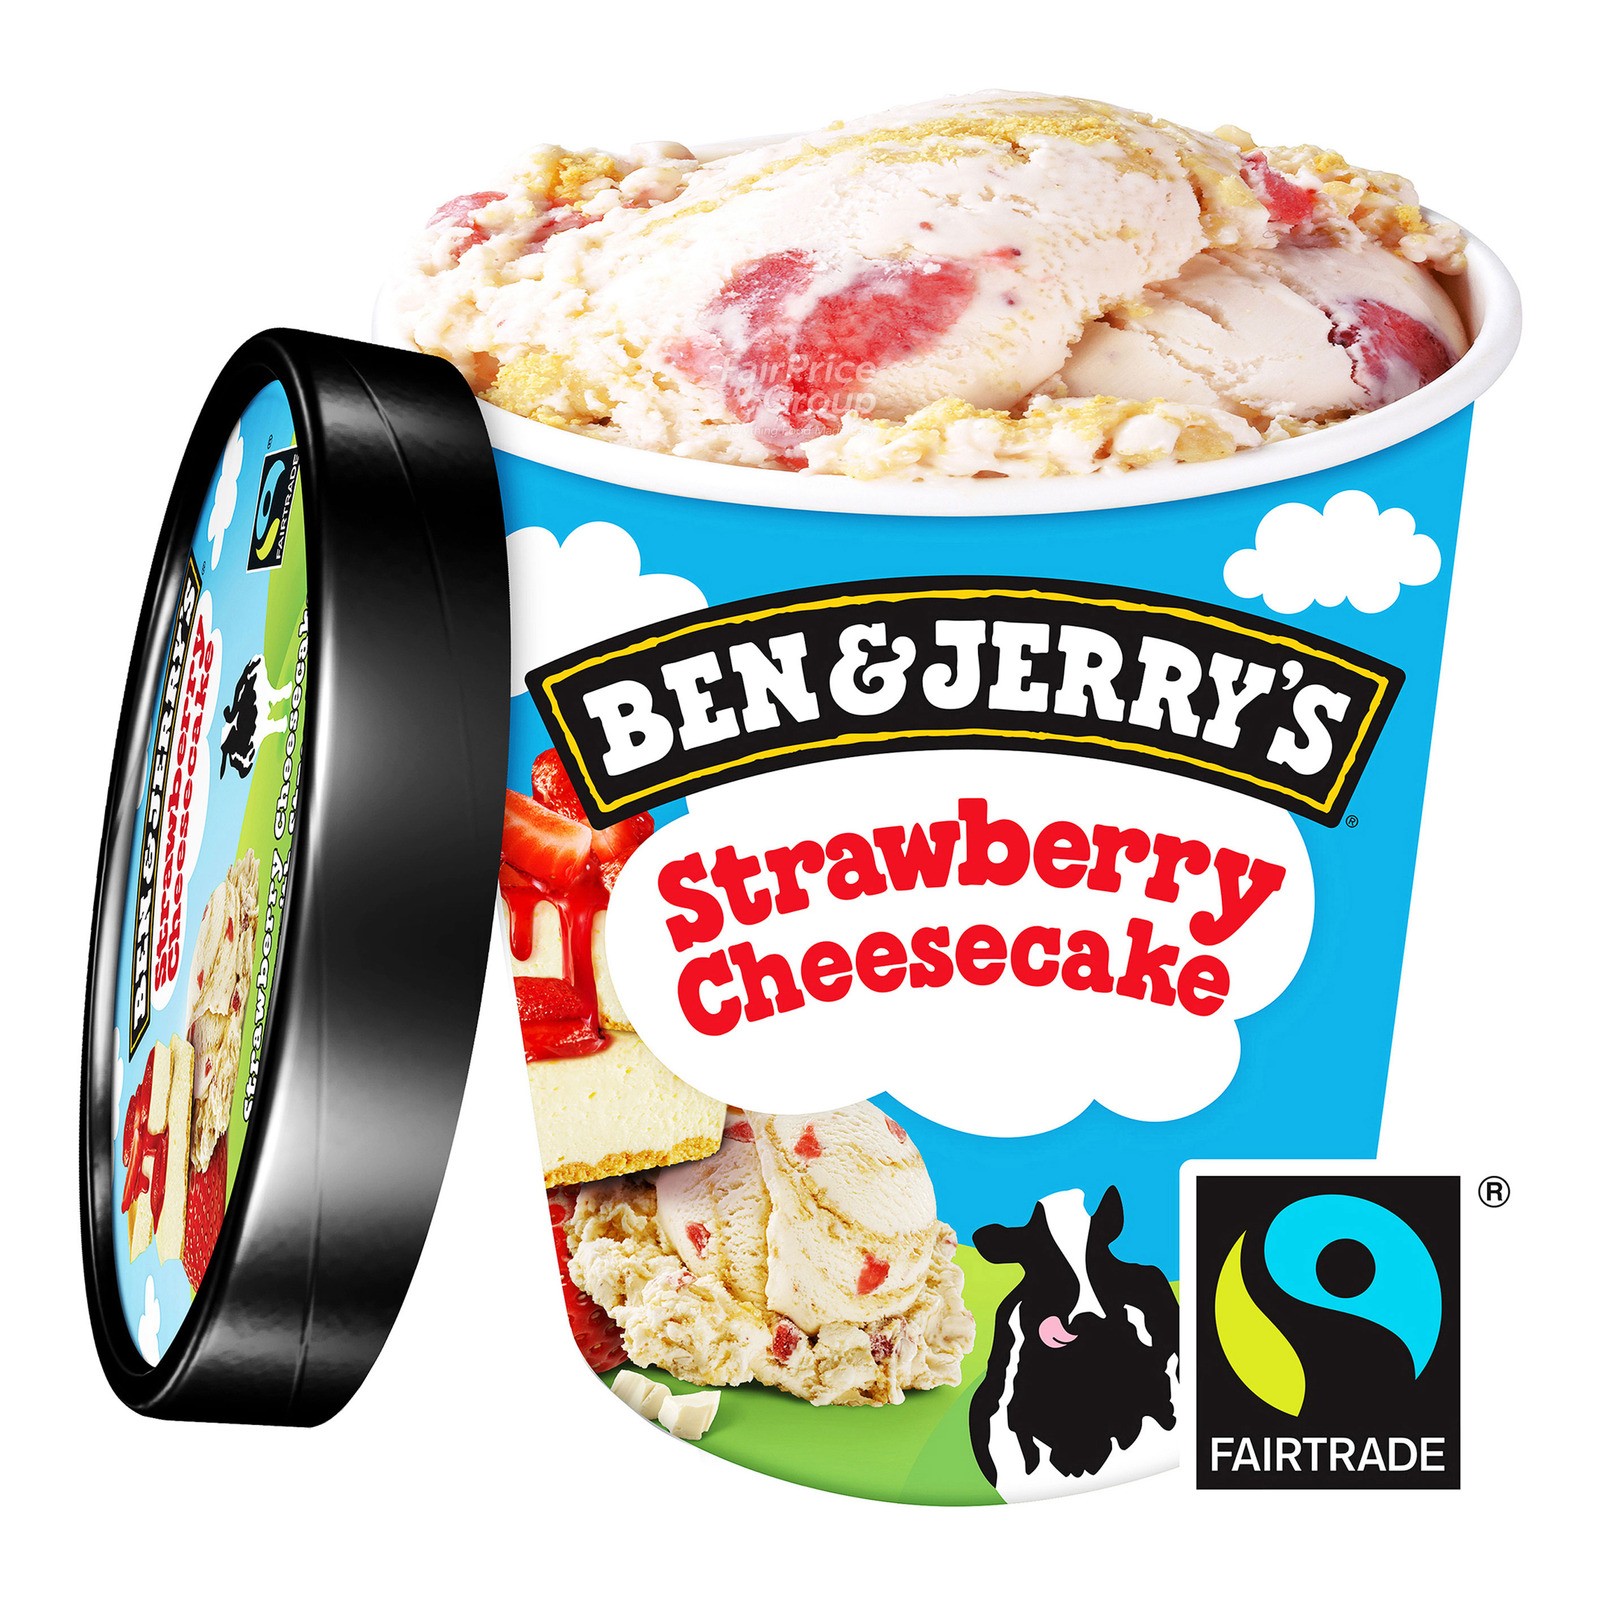 Ben & Jerry's Ice Cream - Strawberry Cheesecake